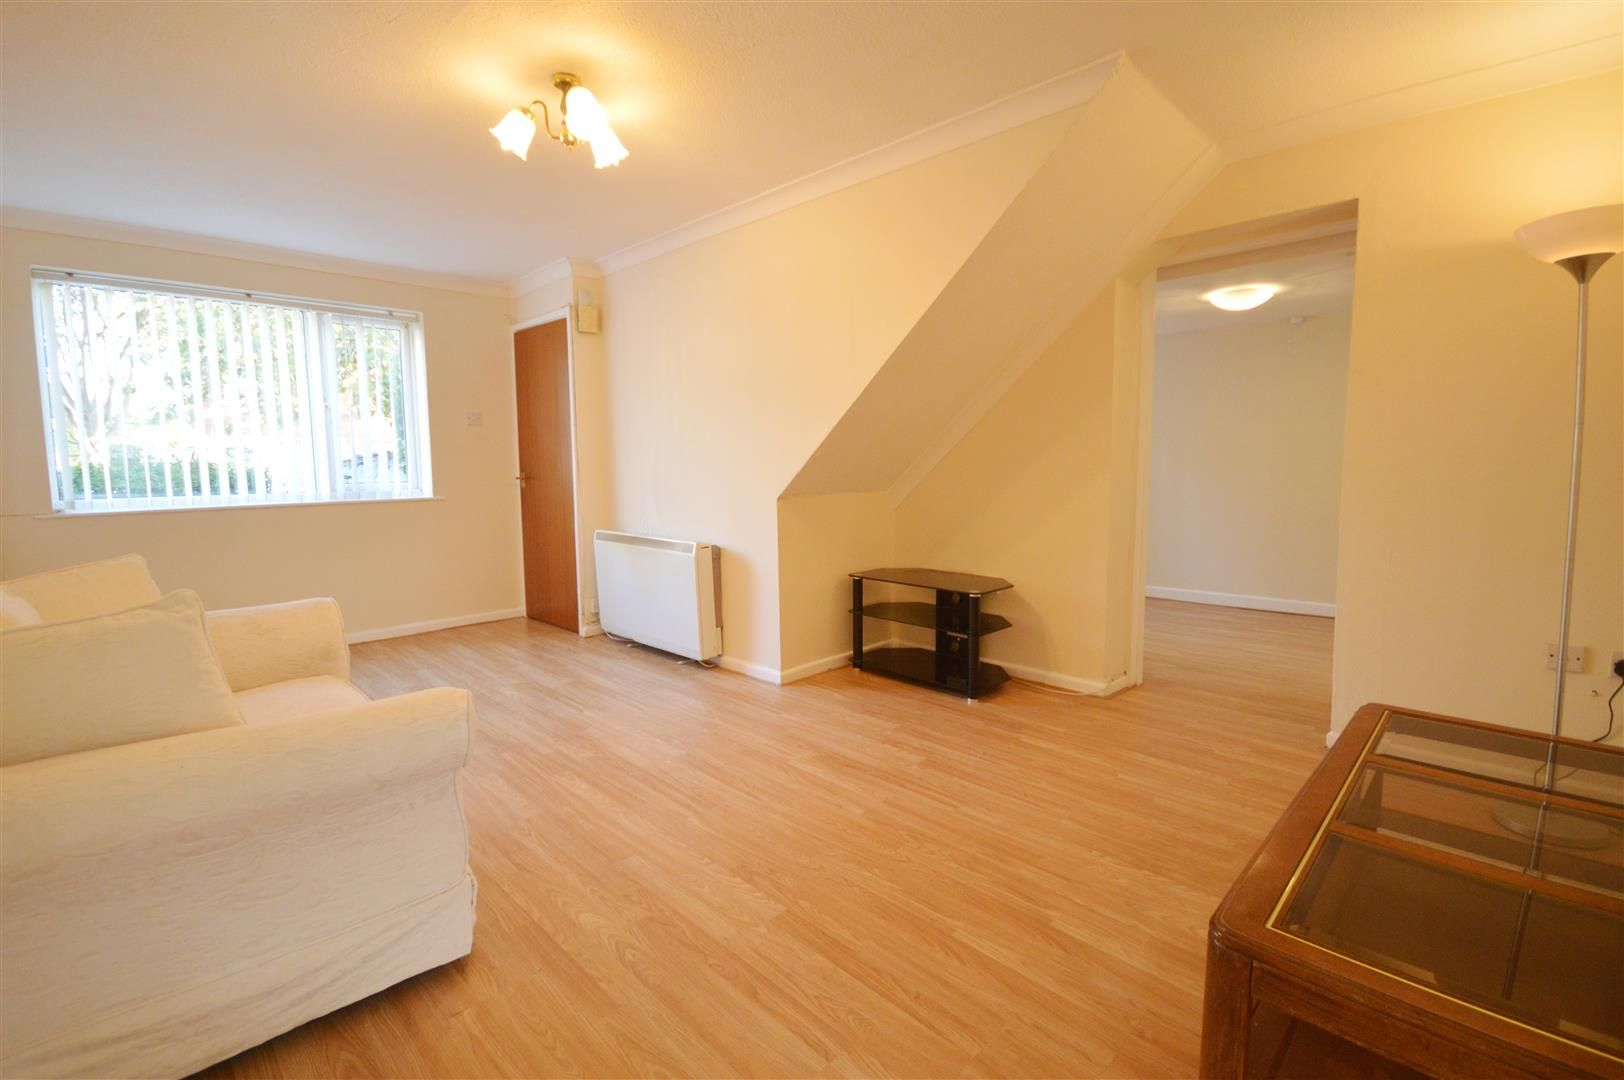 3 bed semi-detached to rent in Leominster 2